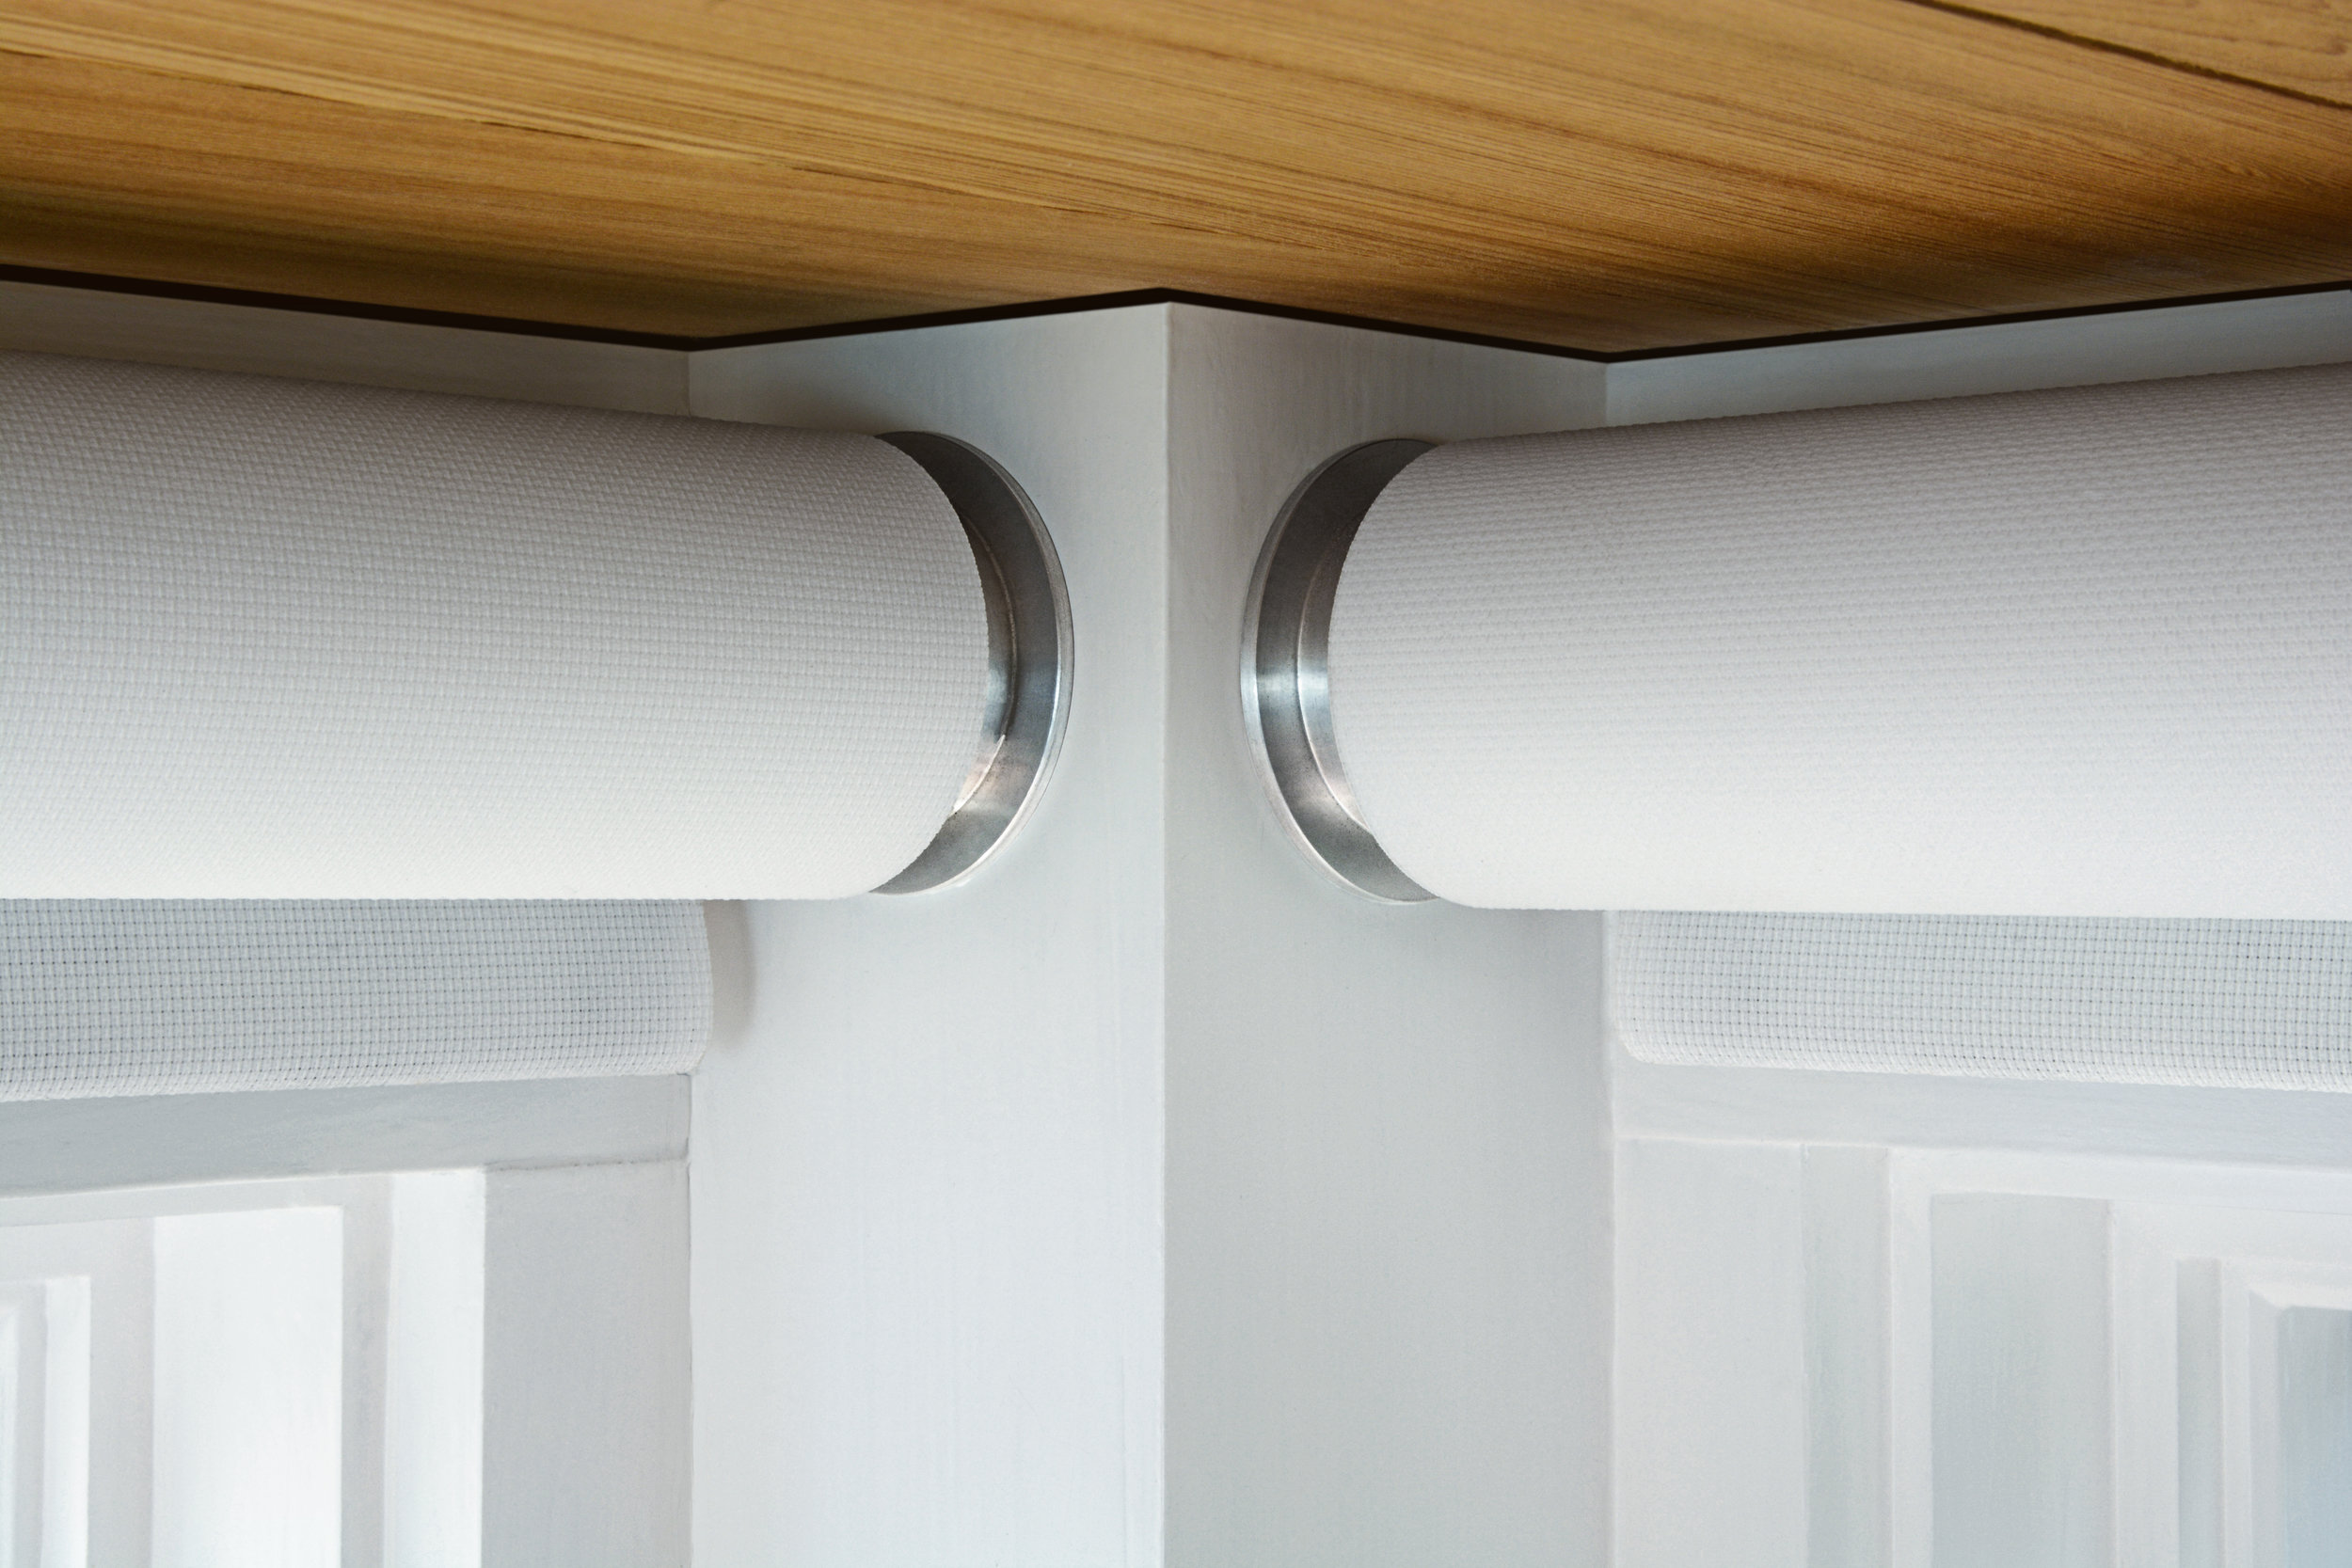 Jamb brackets (R1/R2) are can be mounted inside a window casing or to a wall.